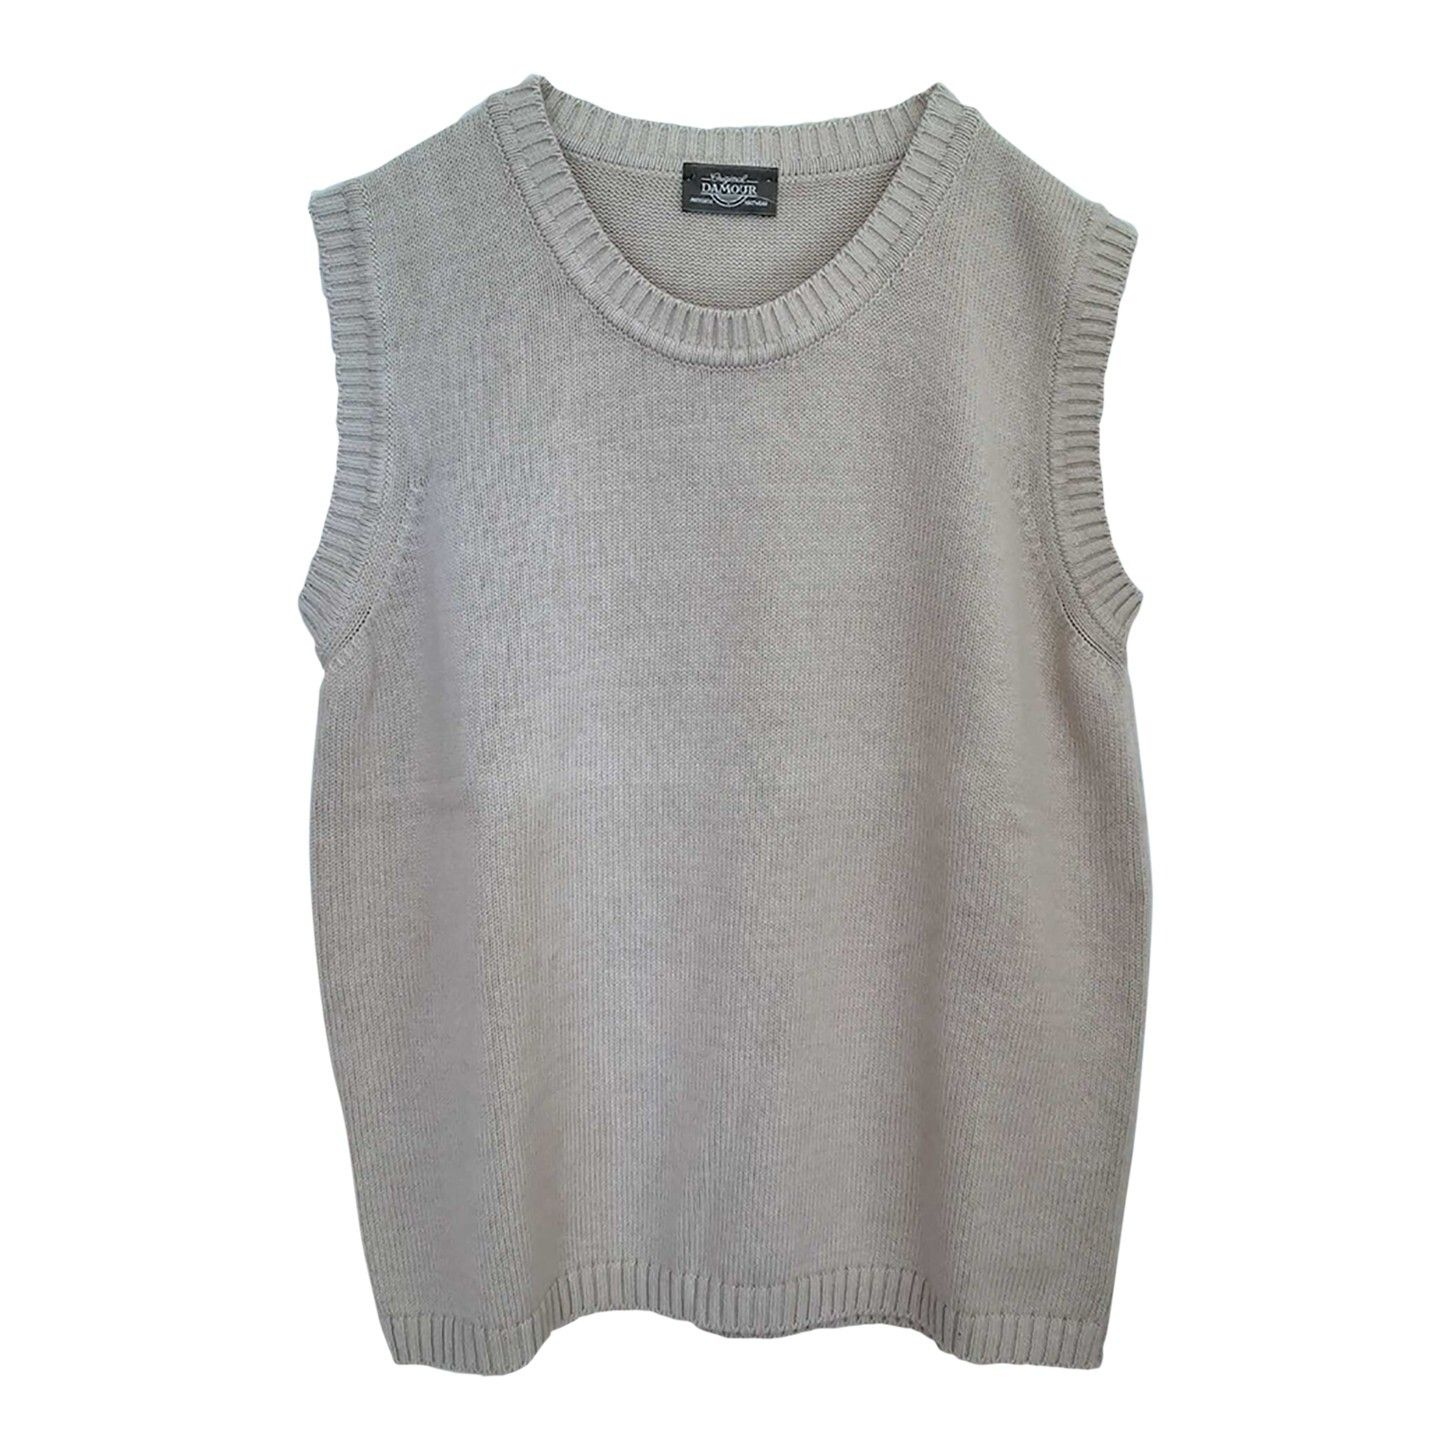 Pull sans manches